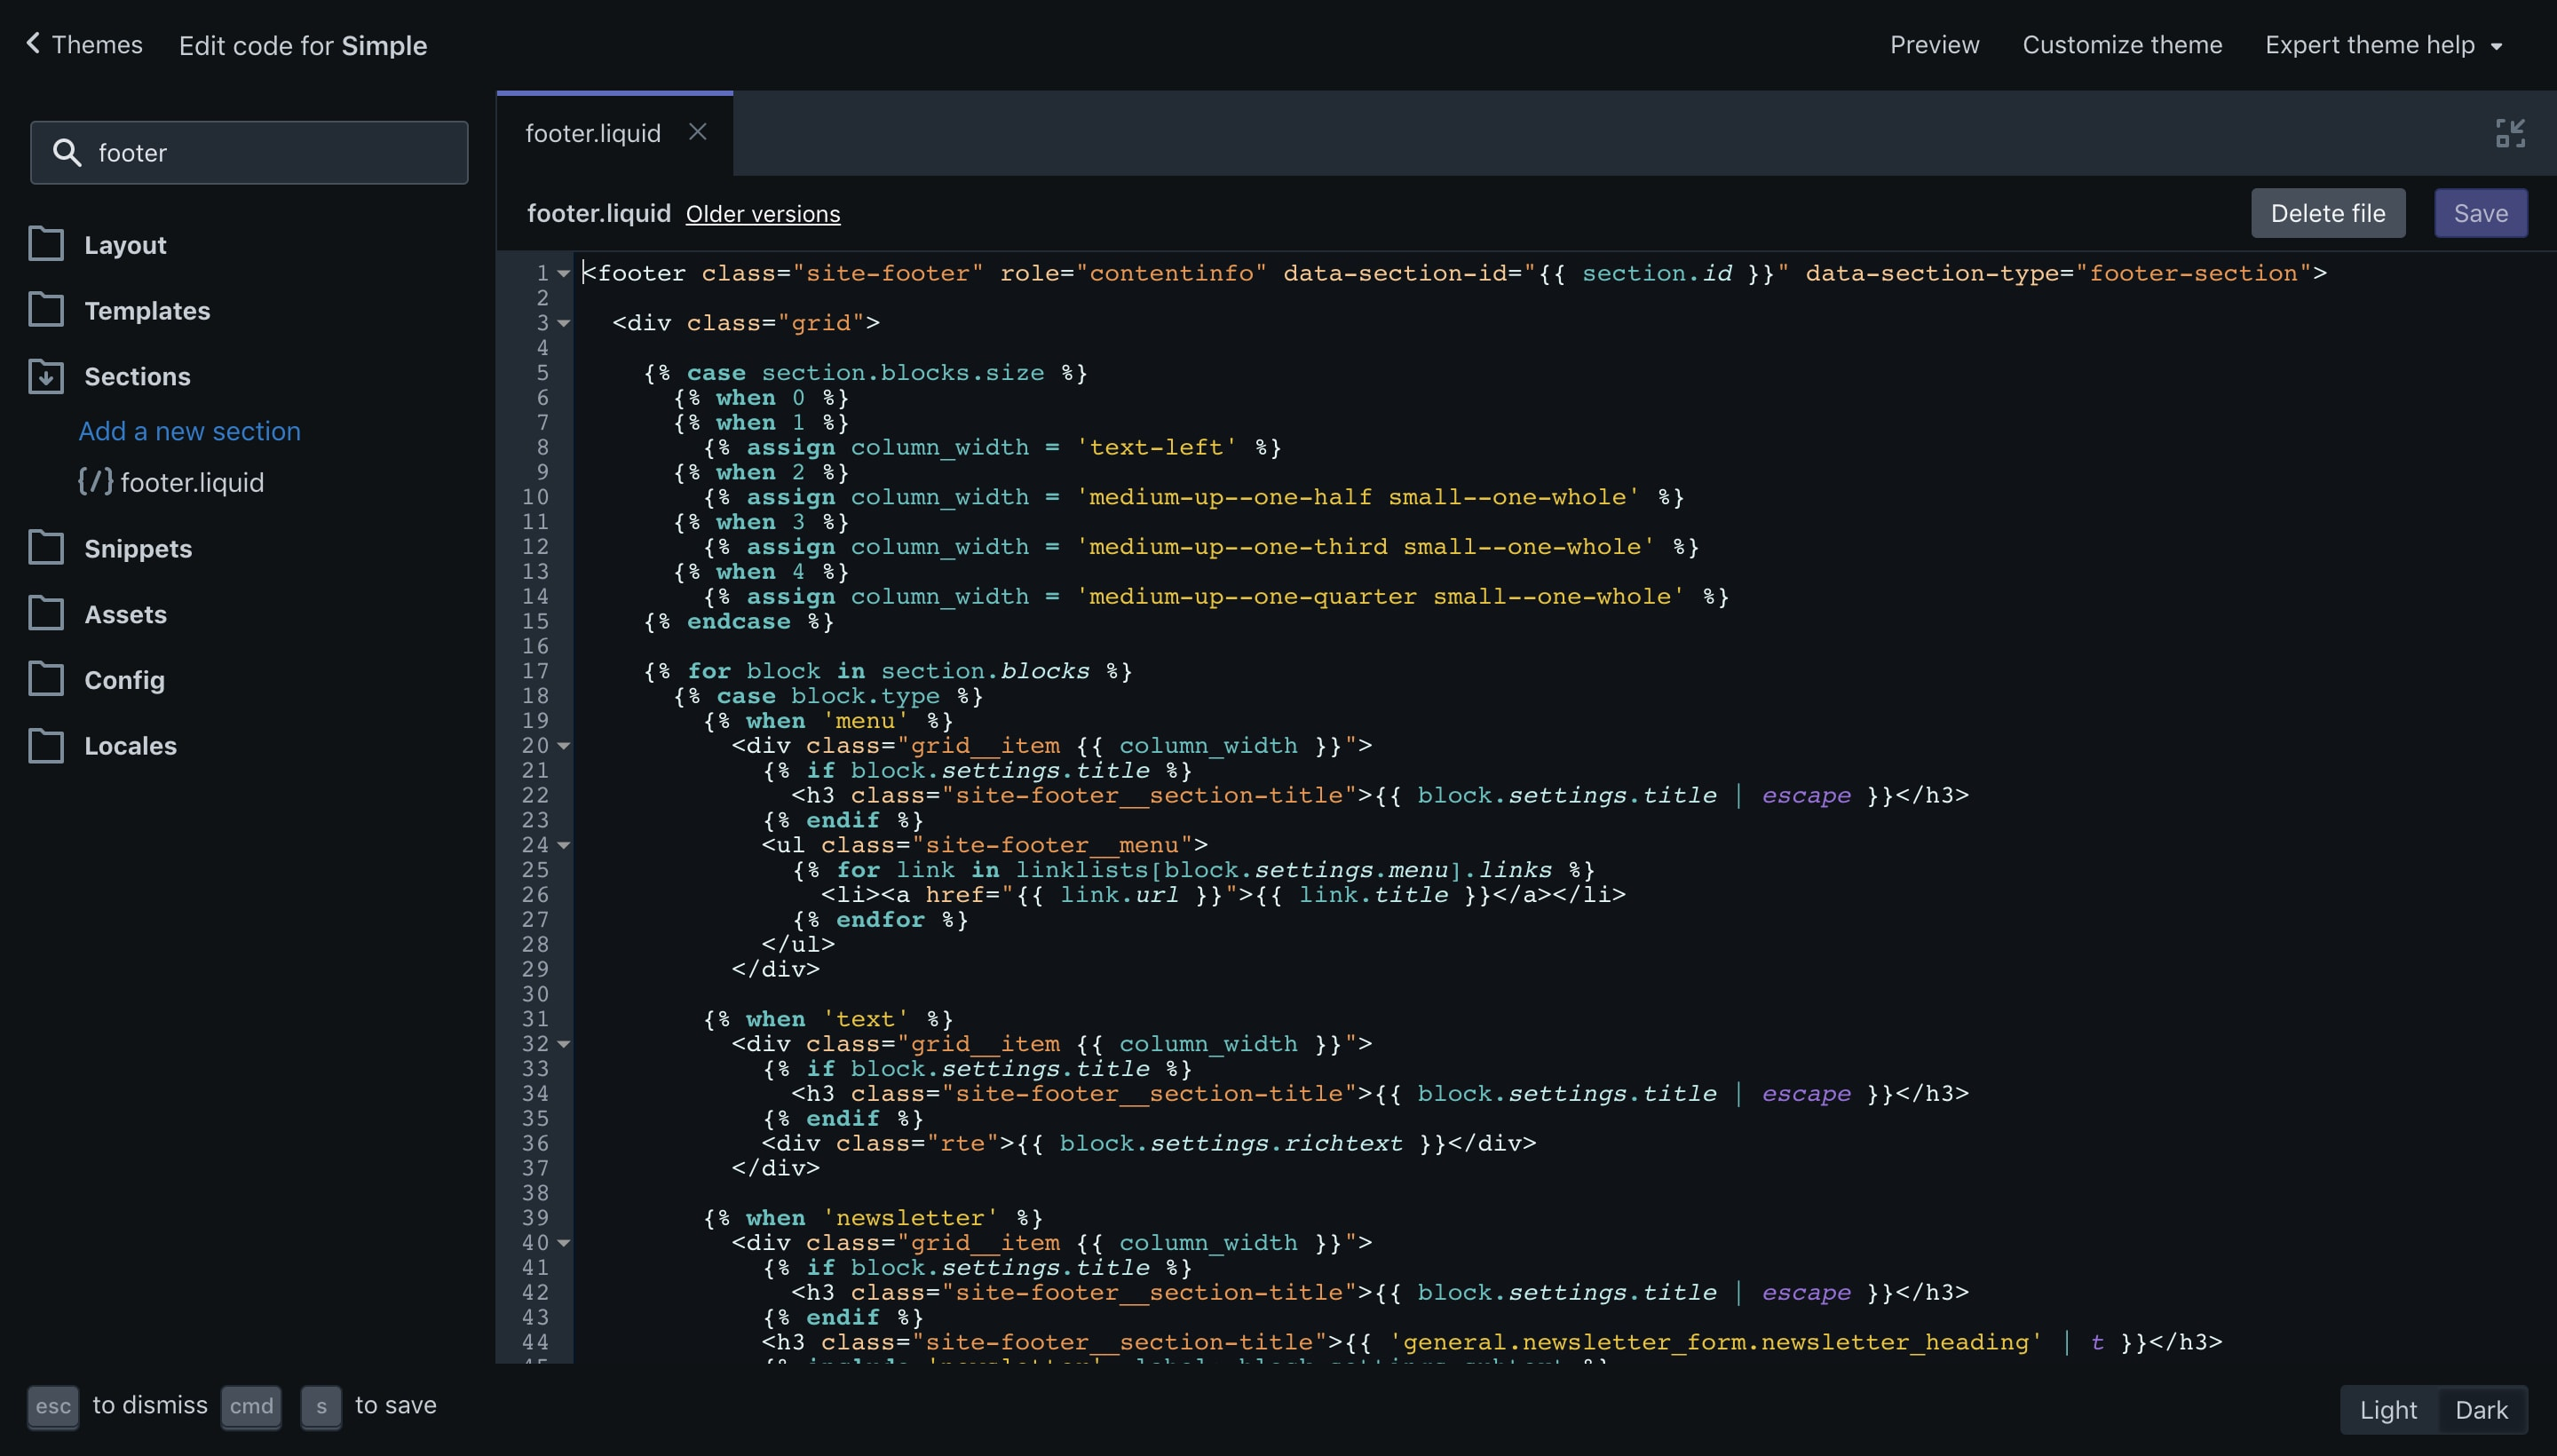 """Simple theme """"footer.liquid"""" file opened in the code editor."""